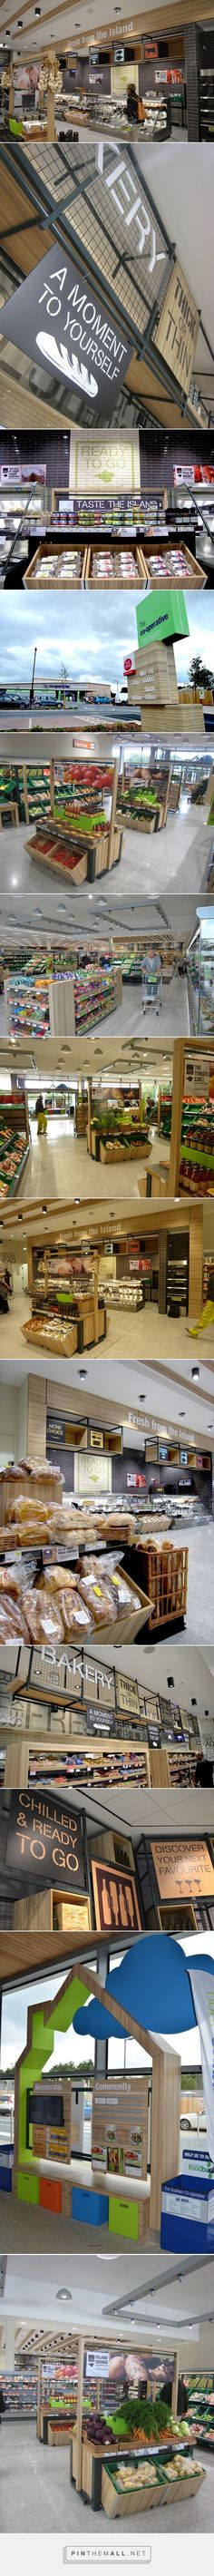 Design showcase: the Isle of Wight& local Co-Operative - Retail Design World - created on Store Signage, Retail Signage, Retail Store Design, Retail Shop, Food Retail, Lofts, Café Bistro, Vitrine Design, Supermarket